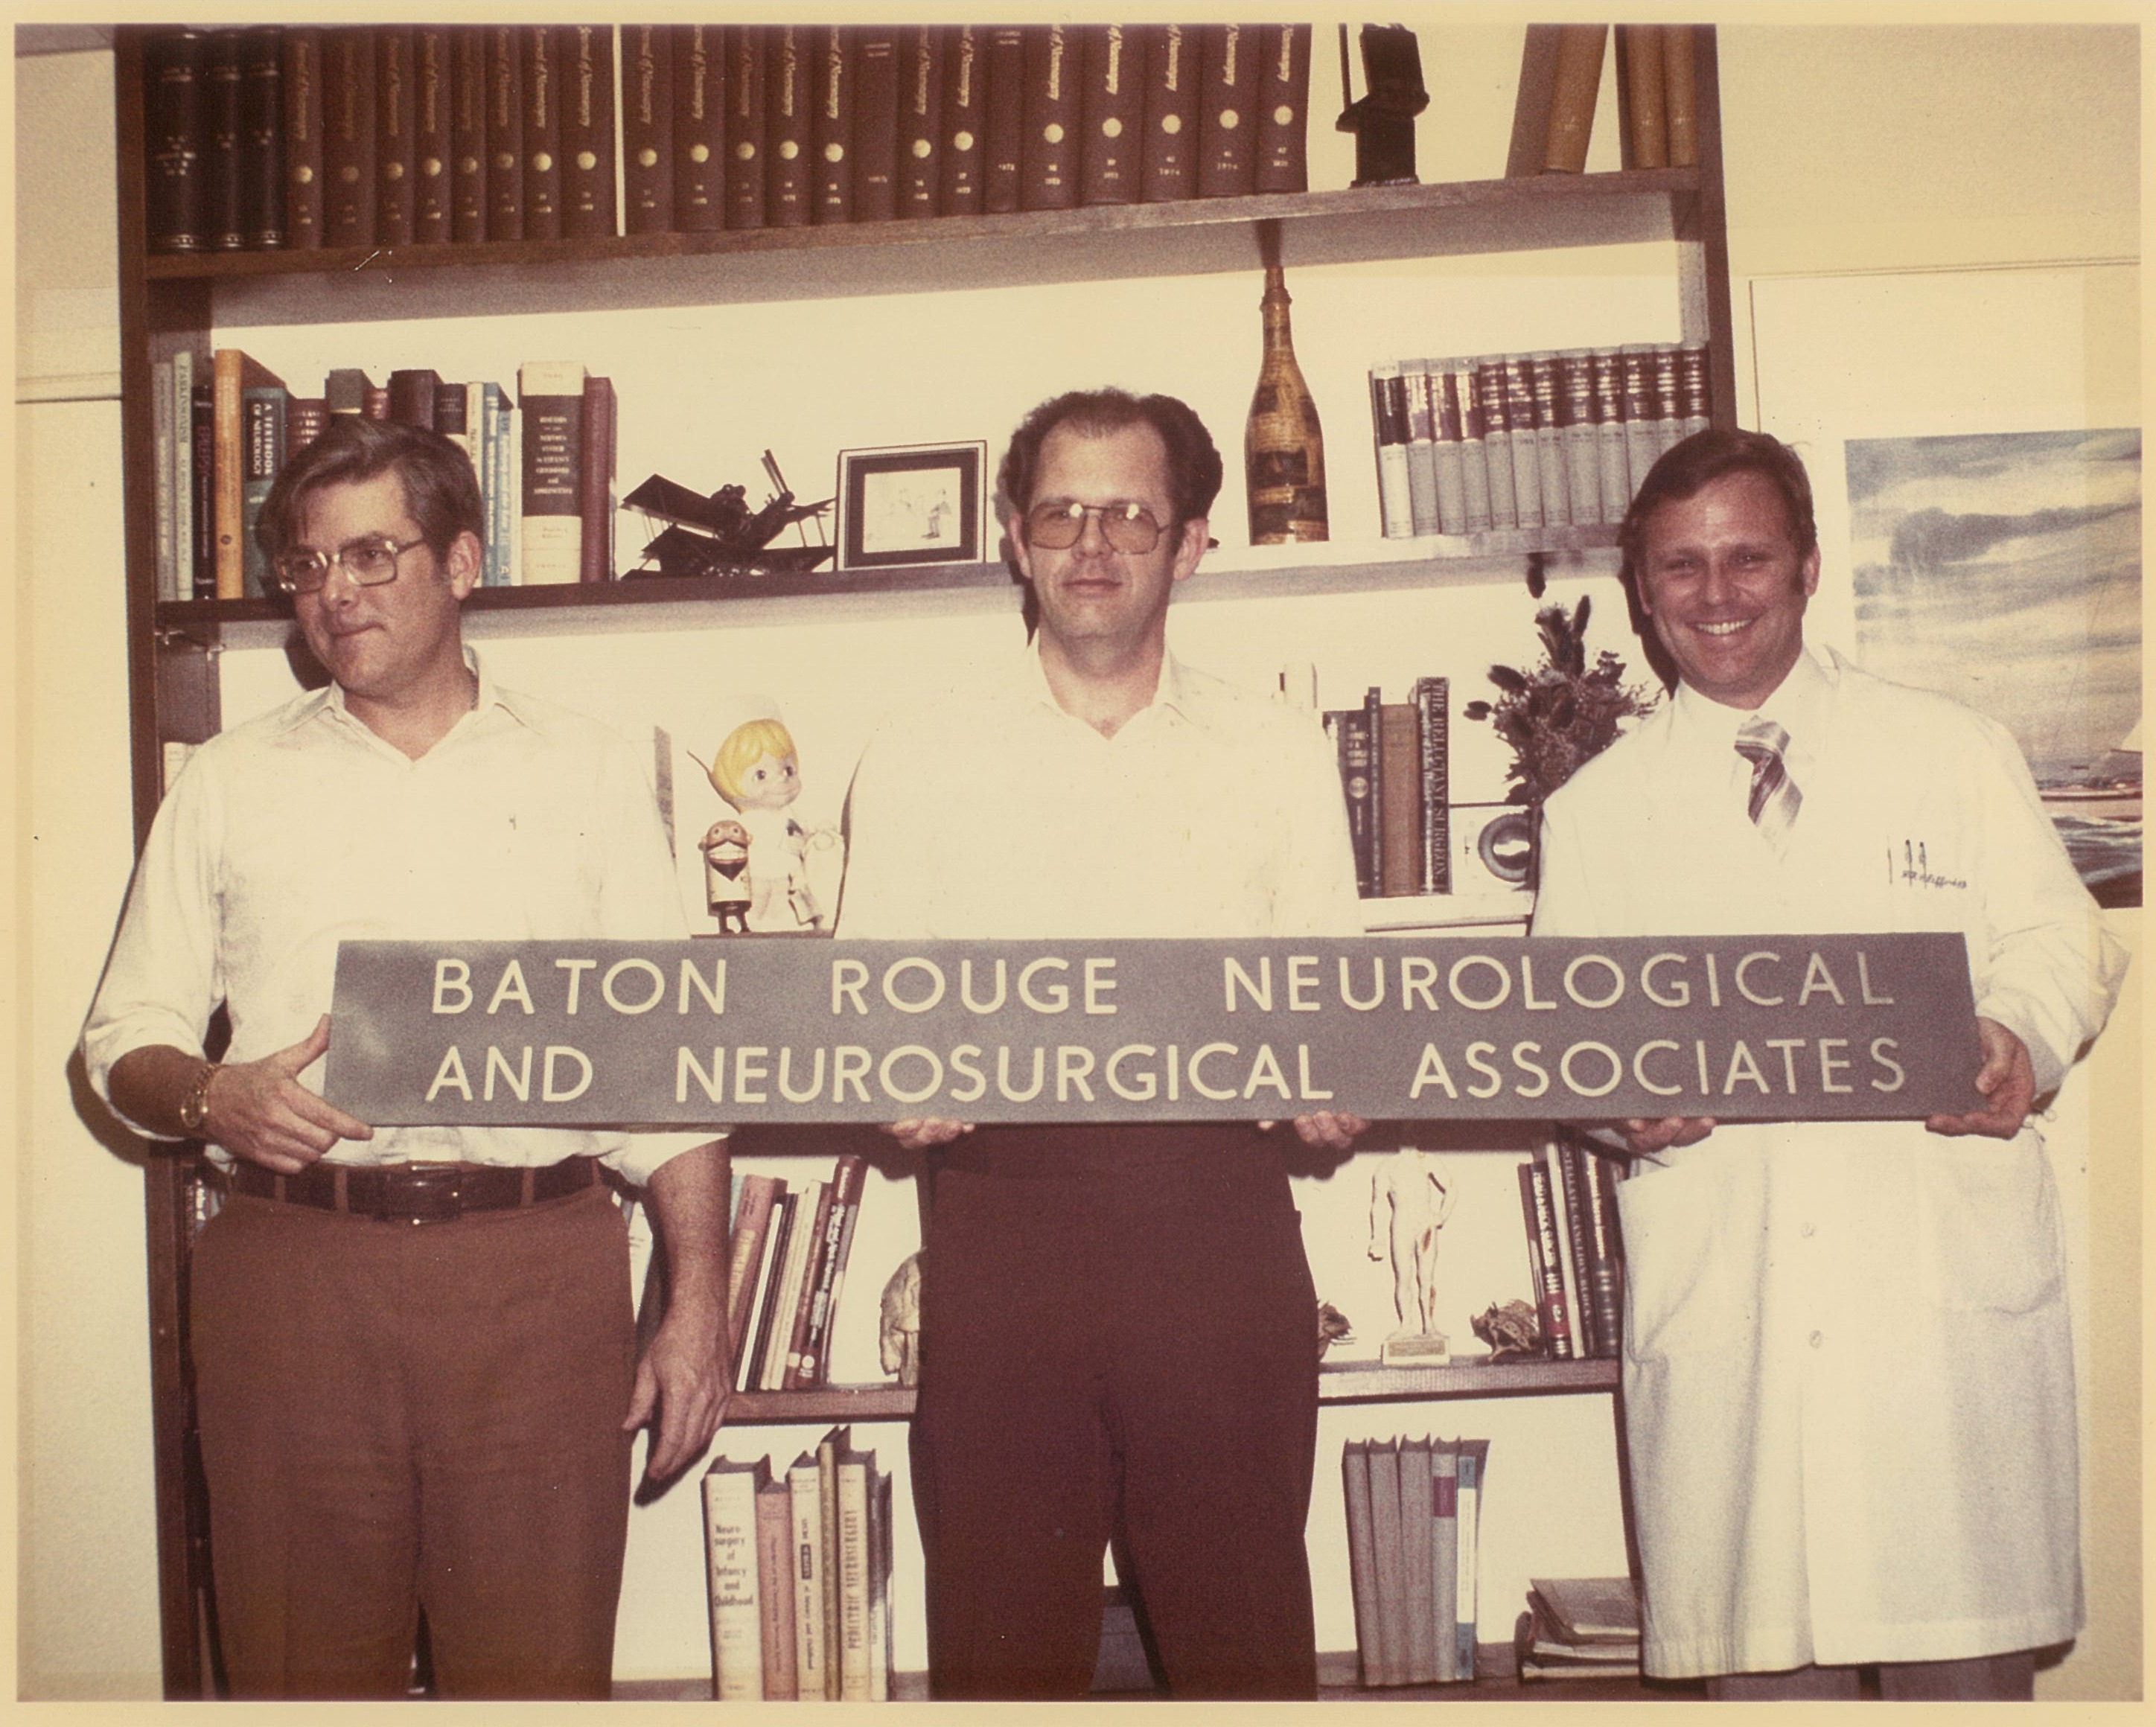 THE NEUROMEDICAL CENTER HISTORY